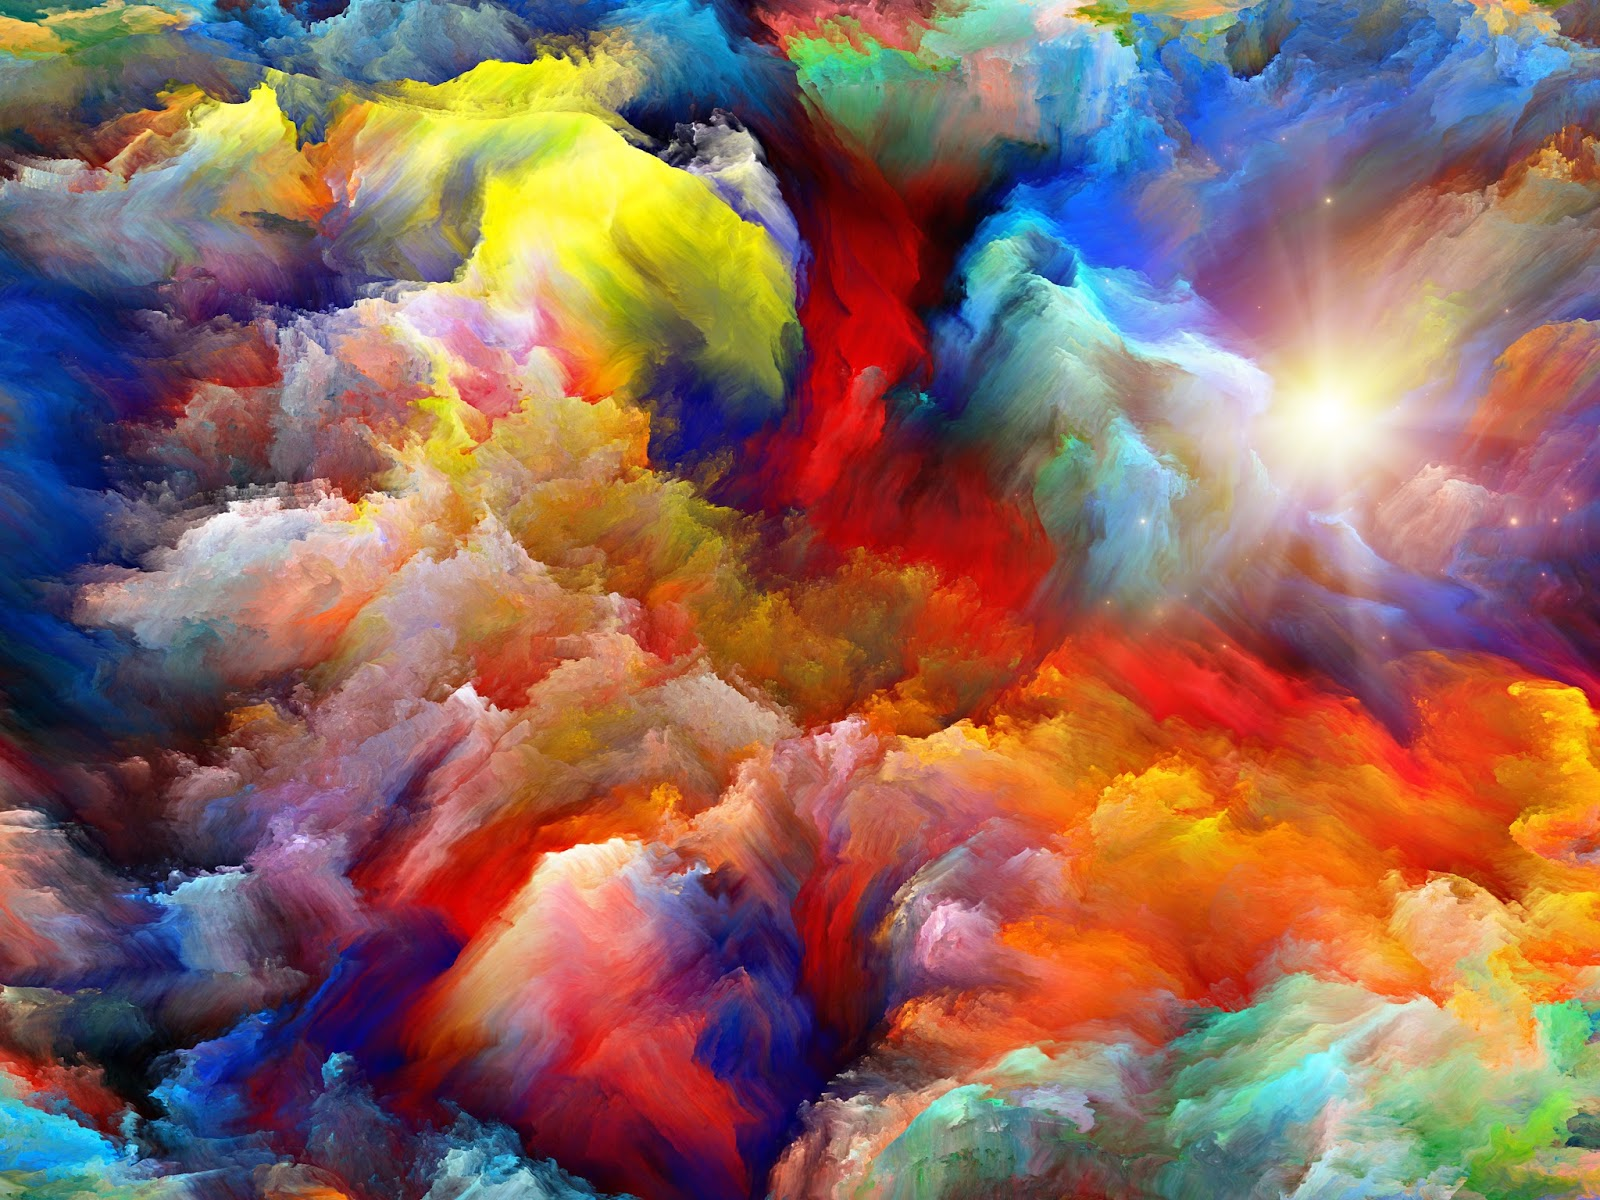 colourful fantasy cloud backgrounds | naveengfx